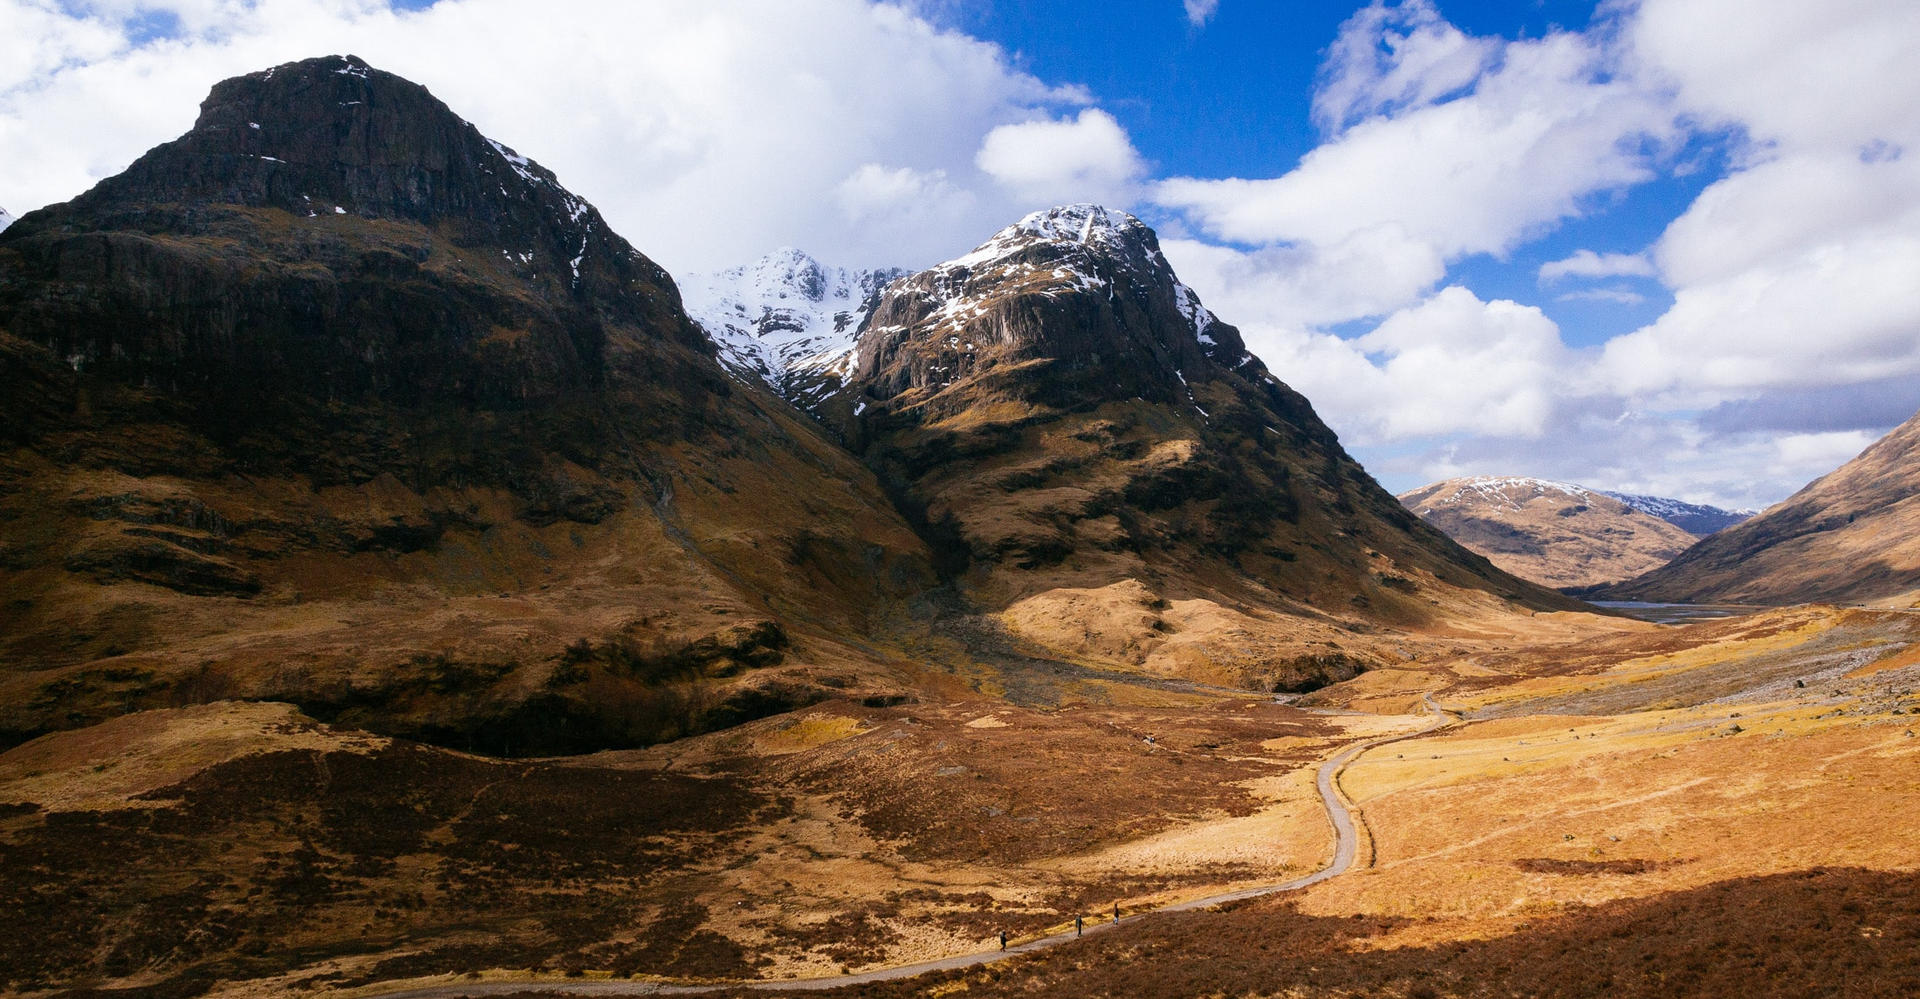 trip to glencoe scotland on most beautiful road in the world